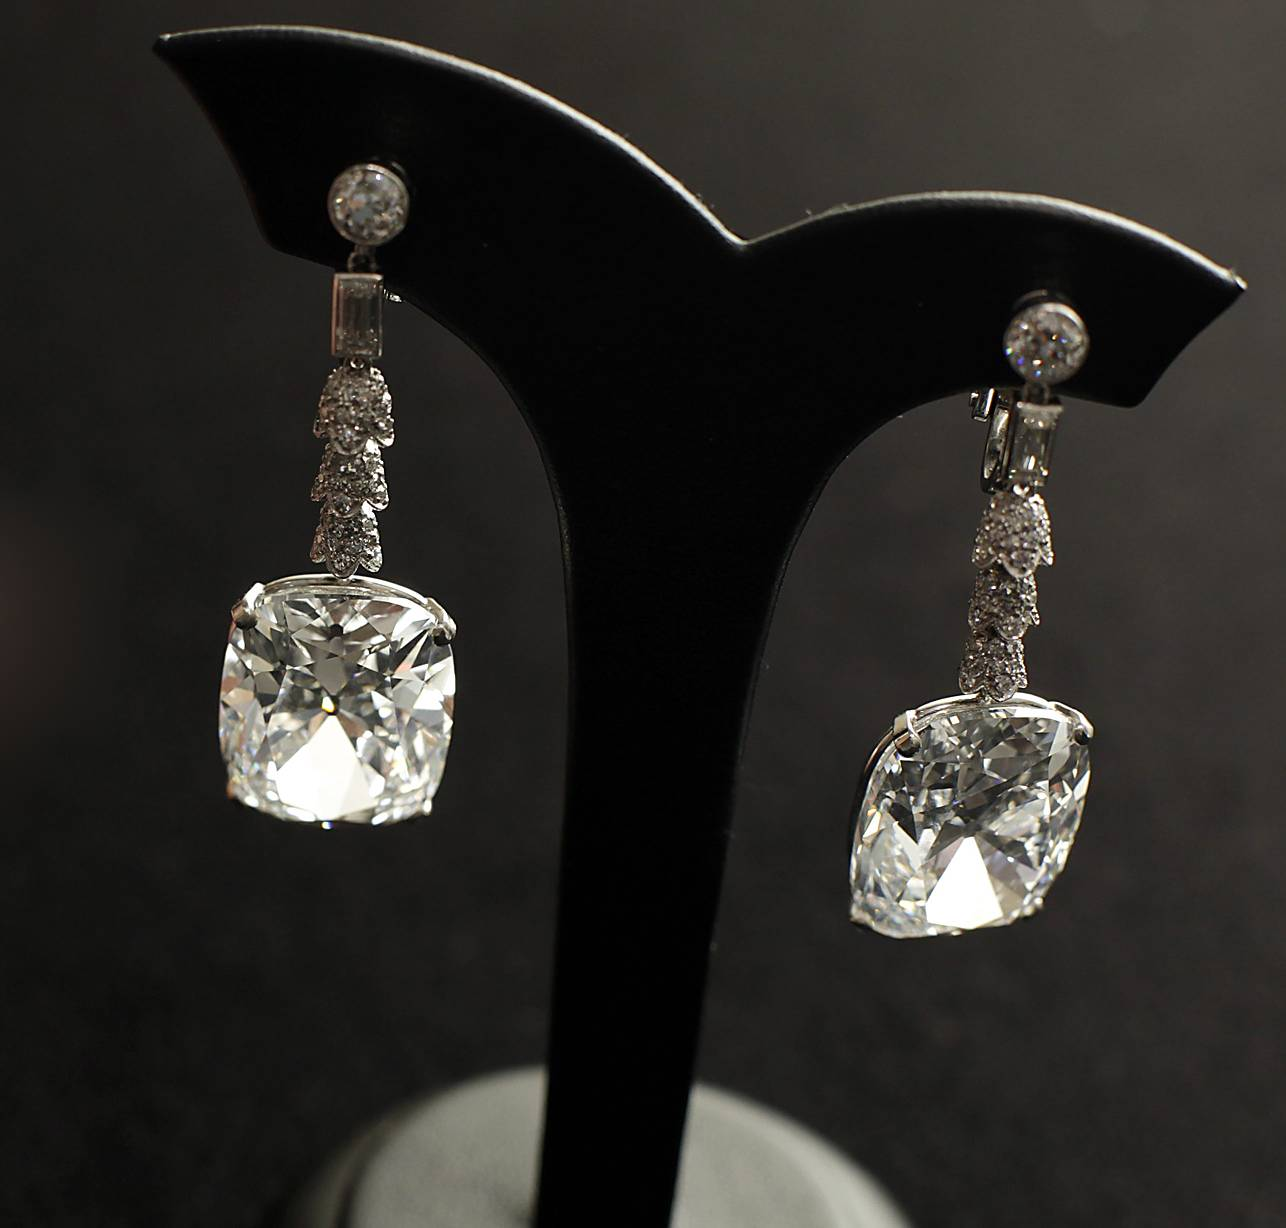 Diamonds - Marilyn Monroe once famously sang that they were a girl's best friend. If you believe the magic will last forever, than go for the precious gems. Afterall, nothing says forever like diamonds.  (Photo: EPA/YM YIK/Landov)